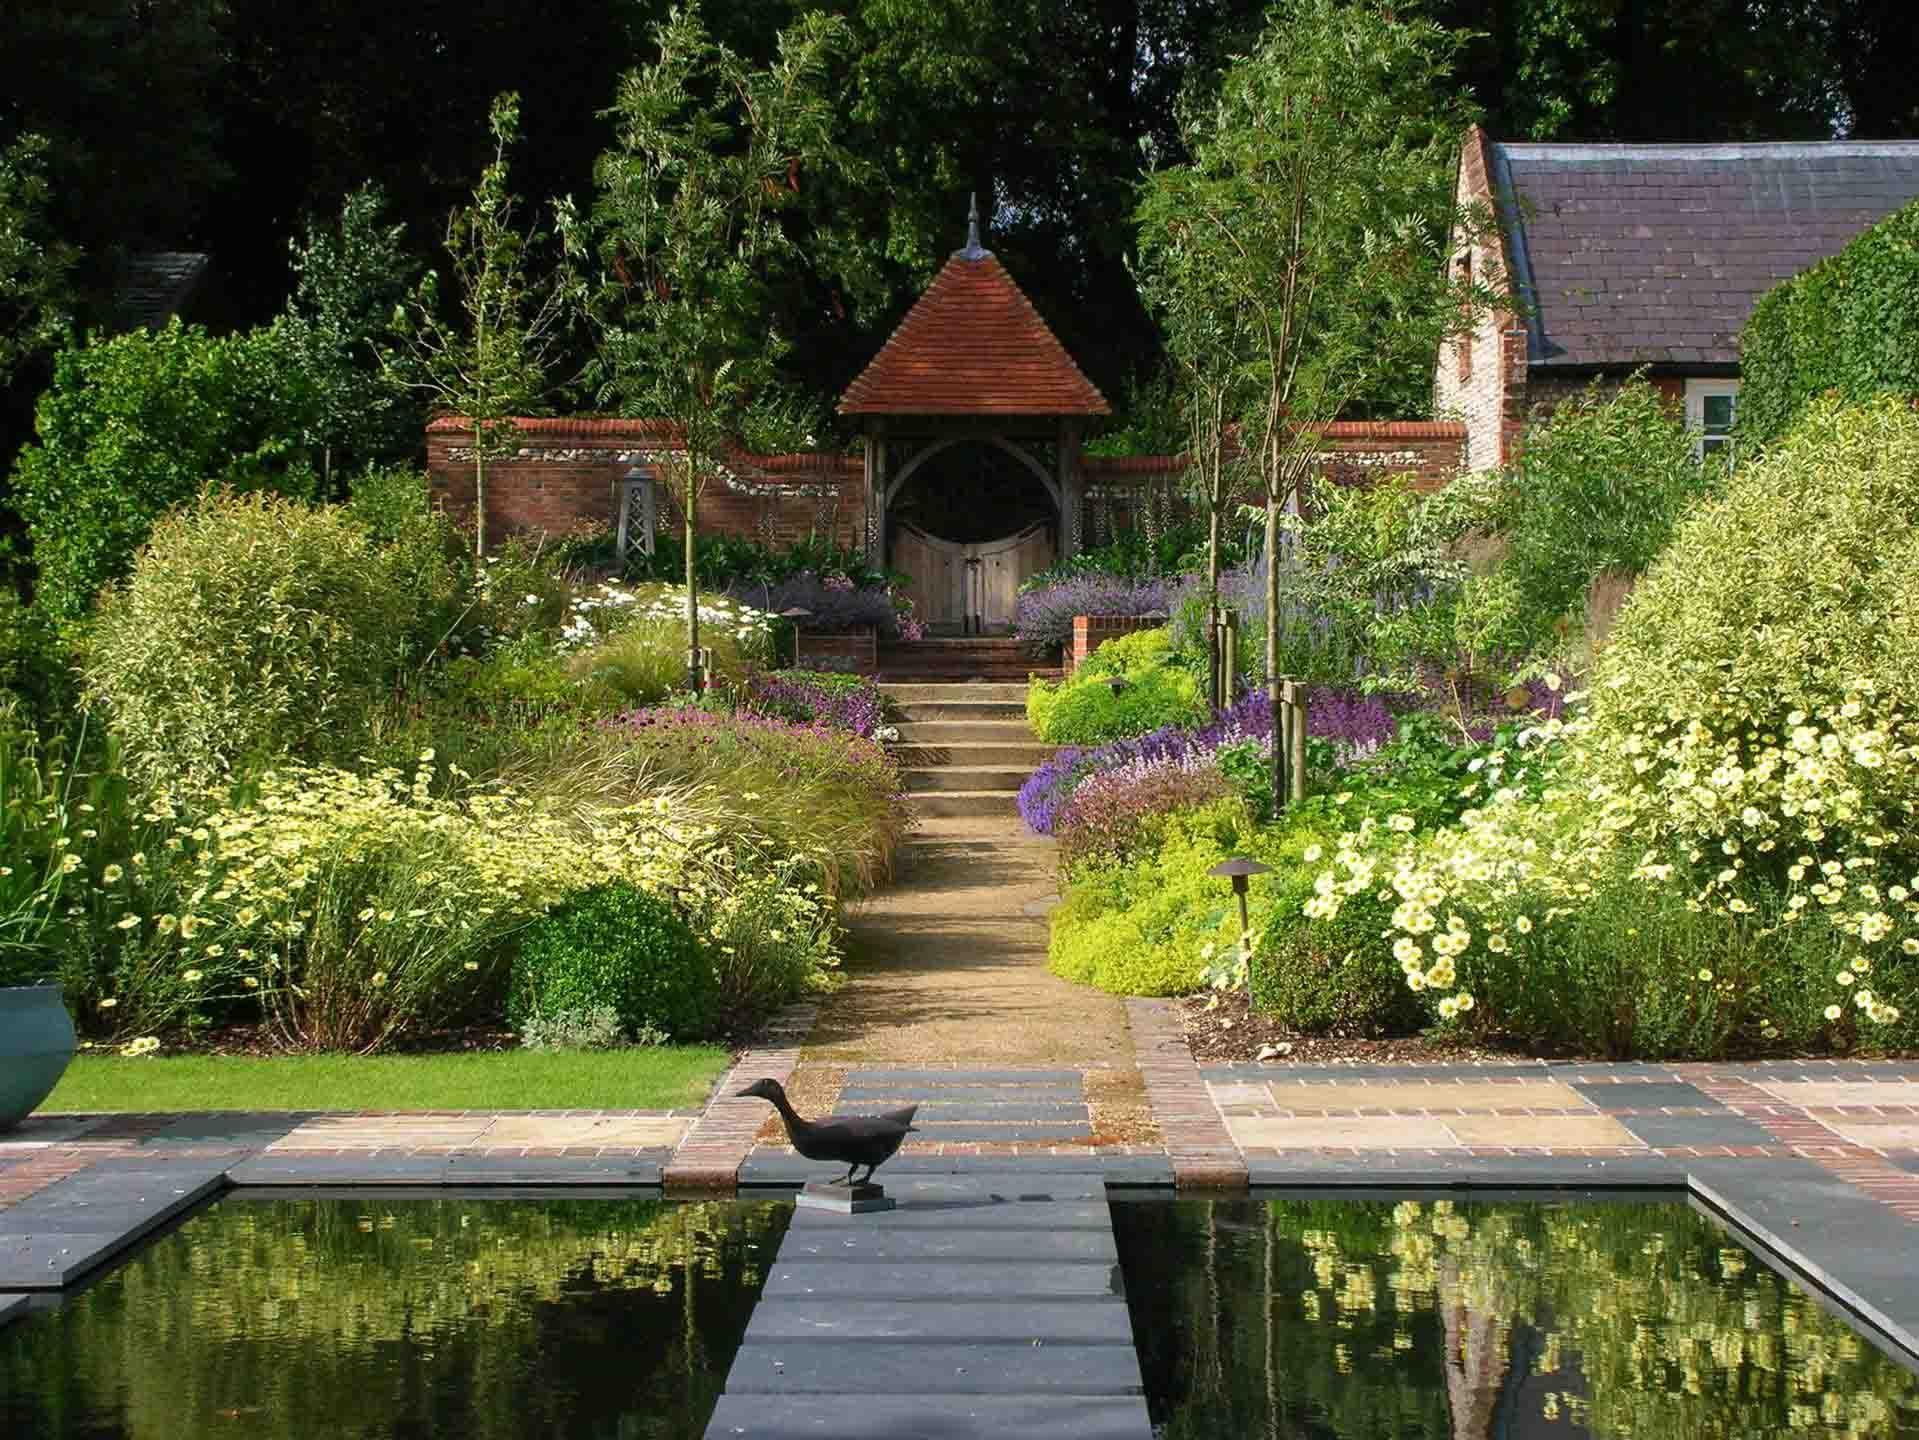 Country estate landscape design landscape design for Country garden design ideas